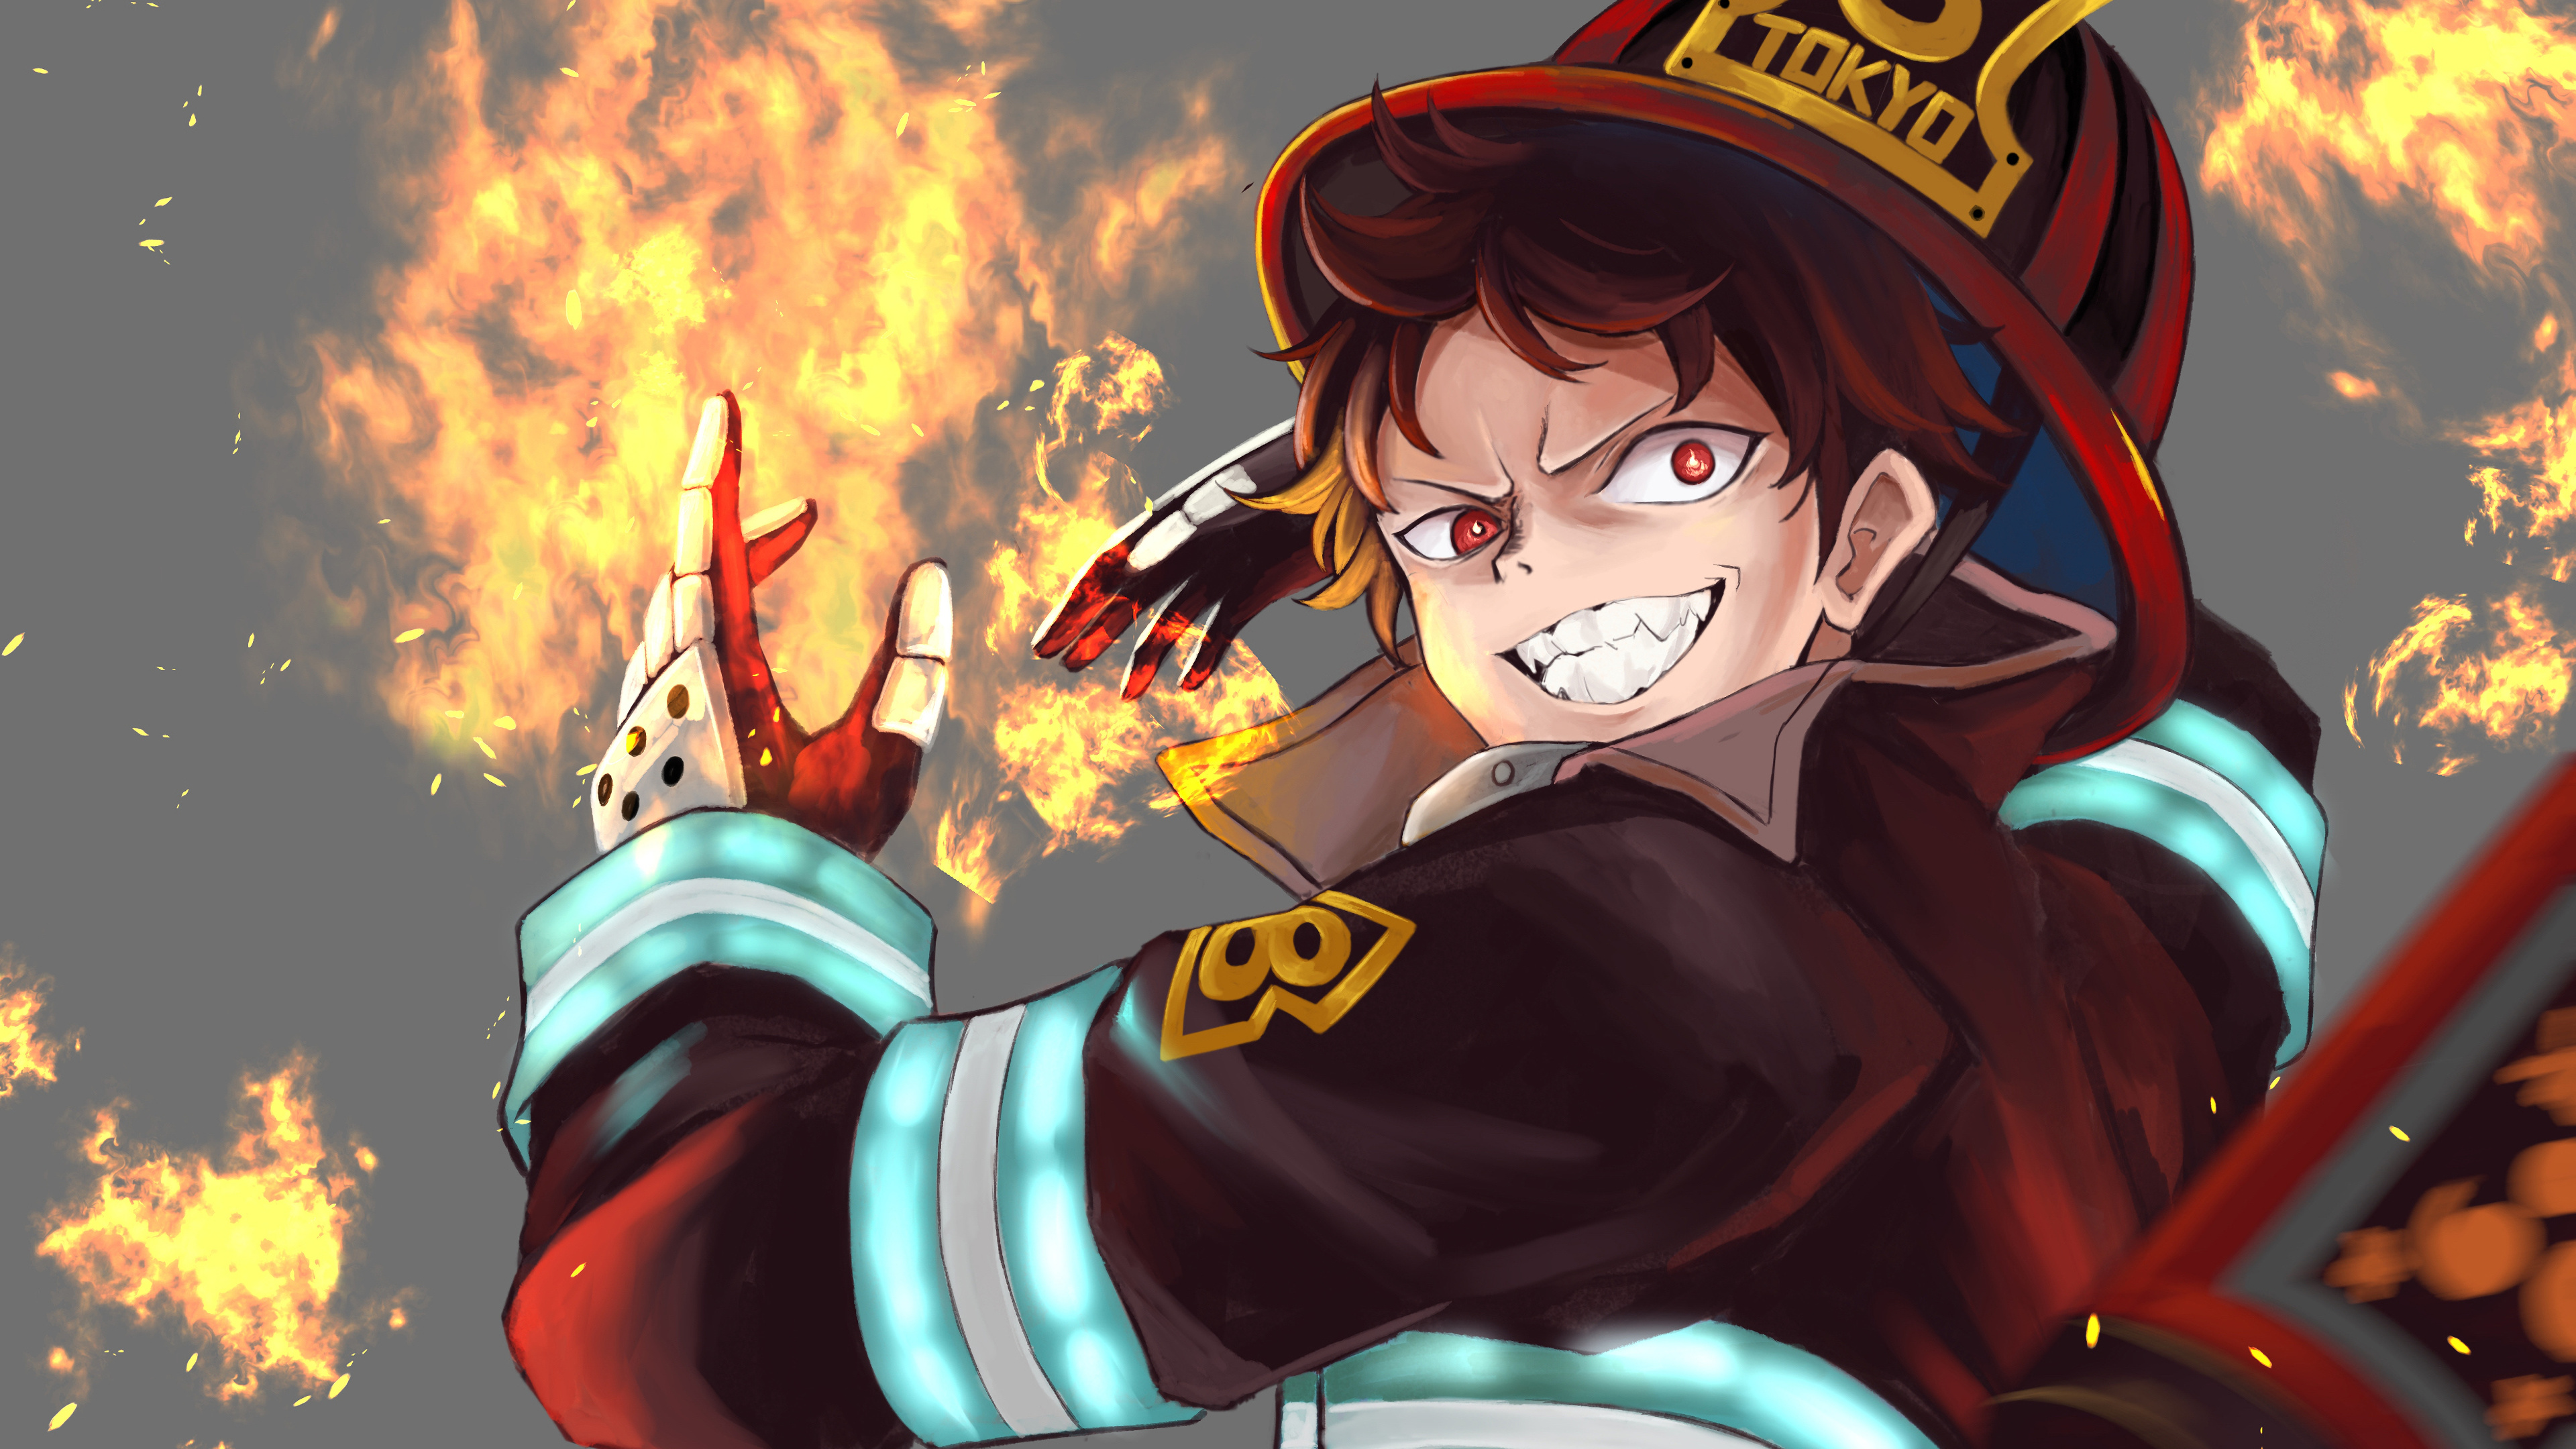 Fire Force Shinra Kusakabe Flame 4k Wallpaper 34 Published by june 12, 2020. fire force shinra kusakabe flame 4k